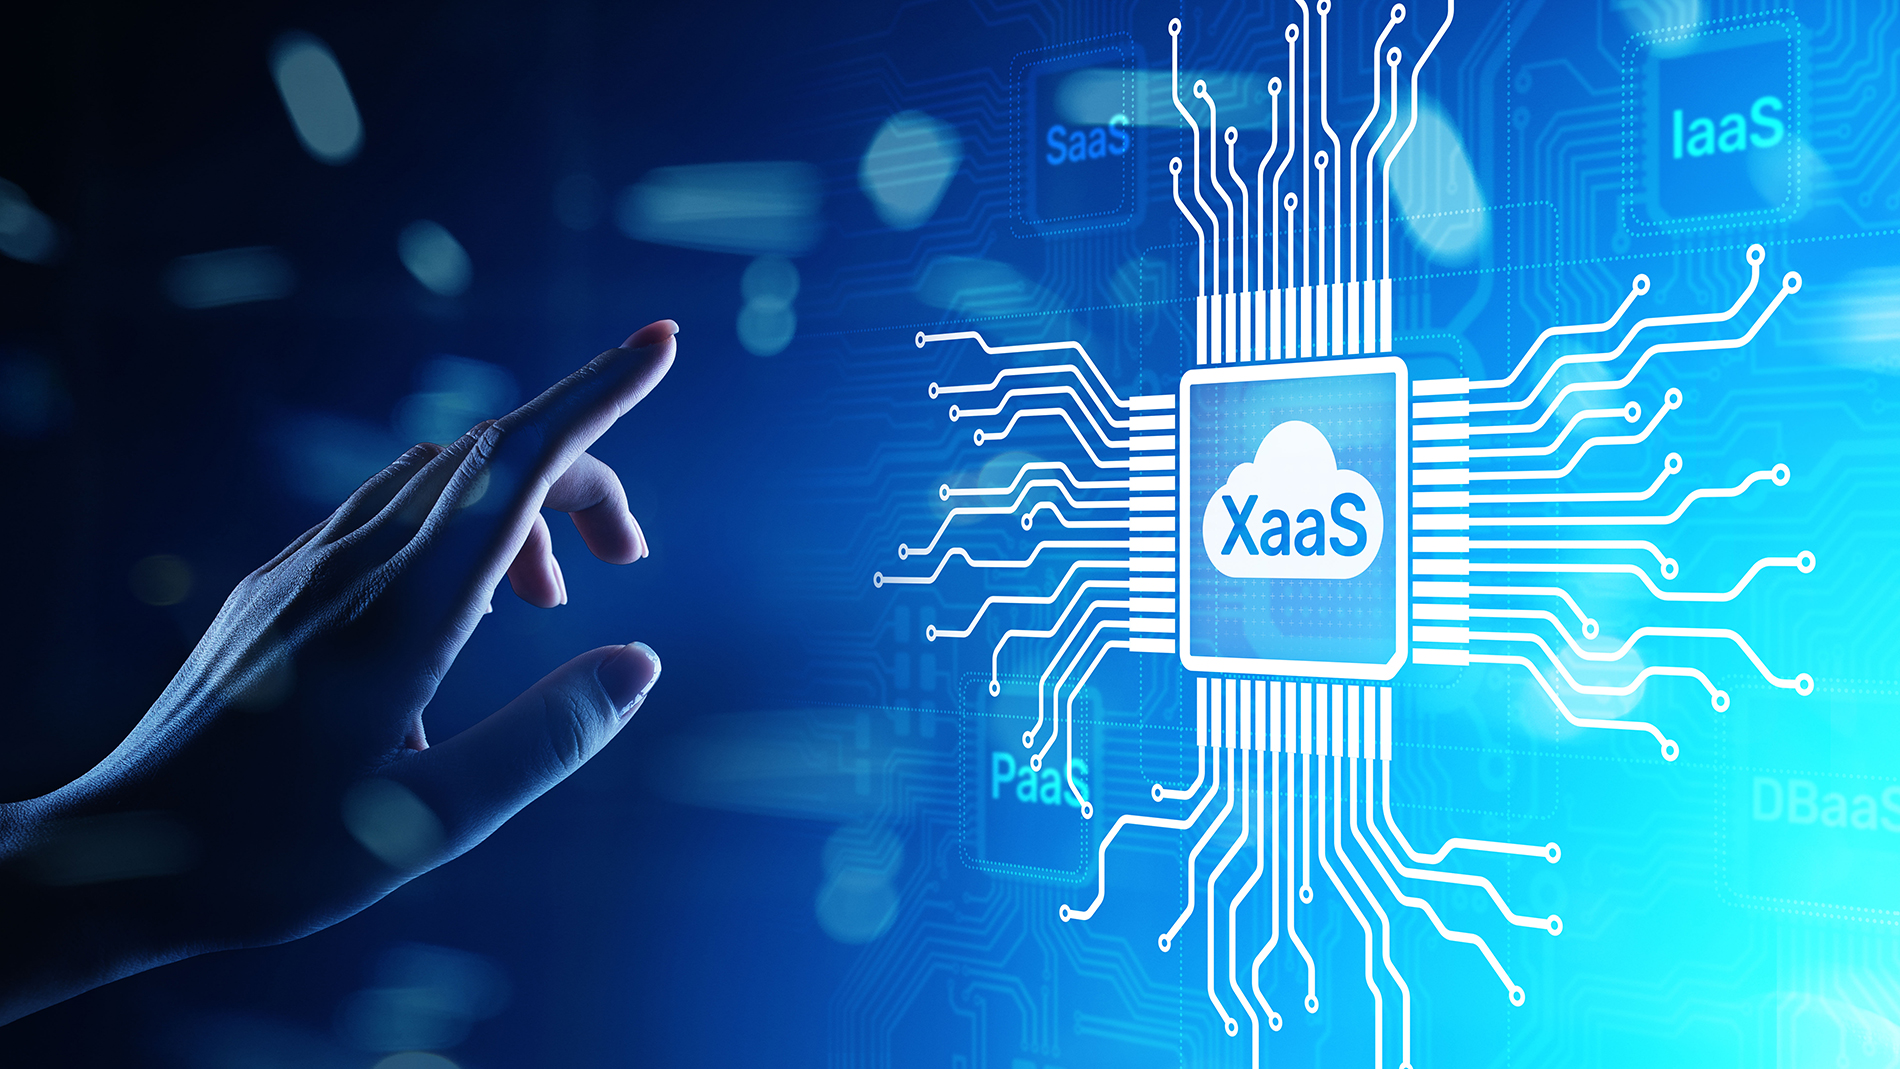 Graphic about XasS